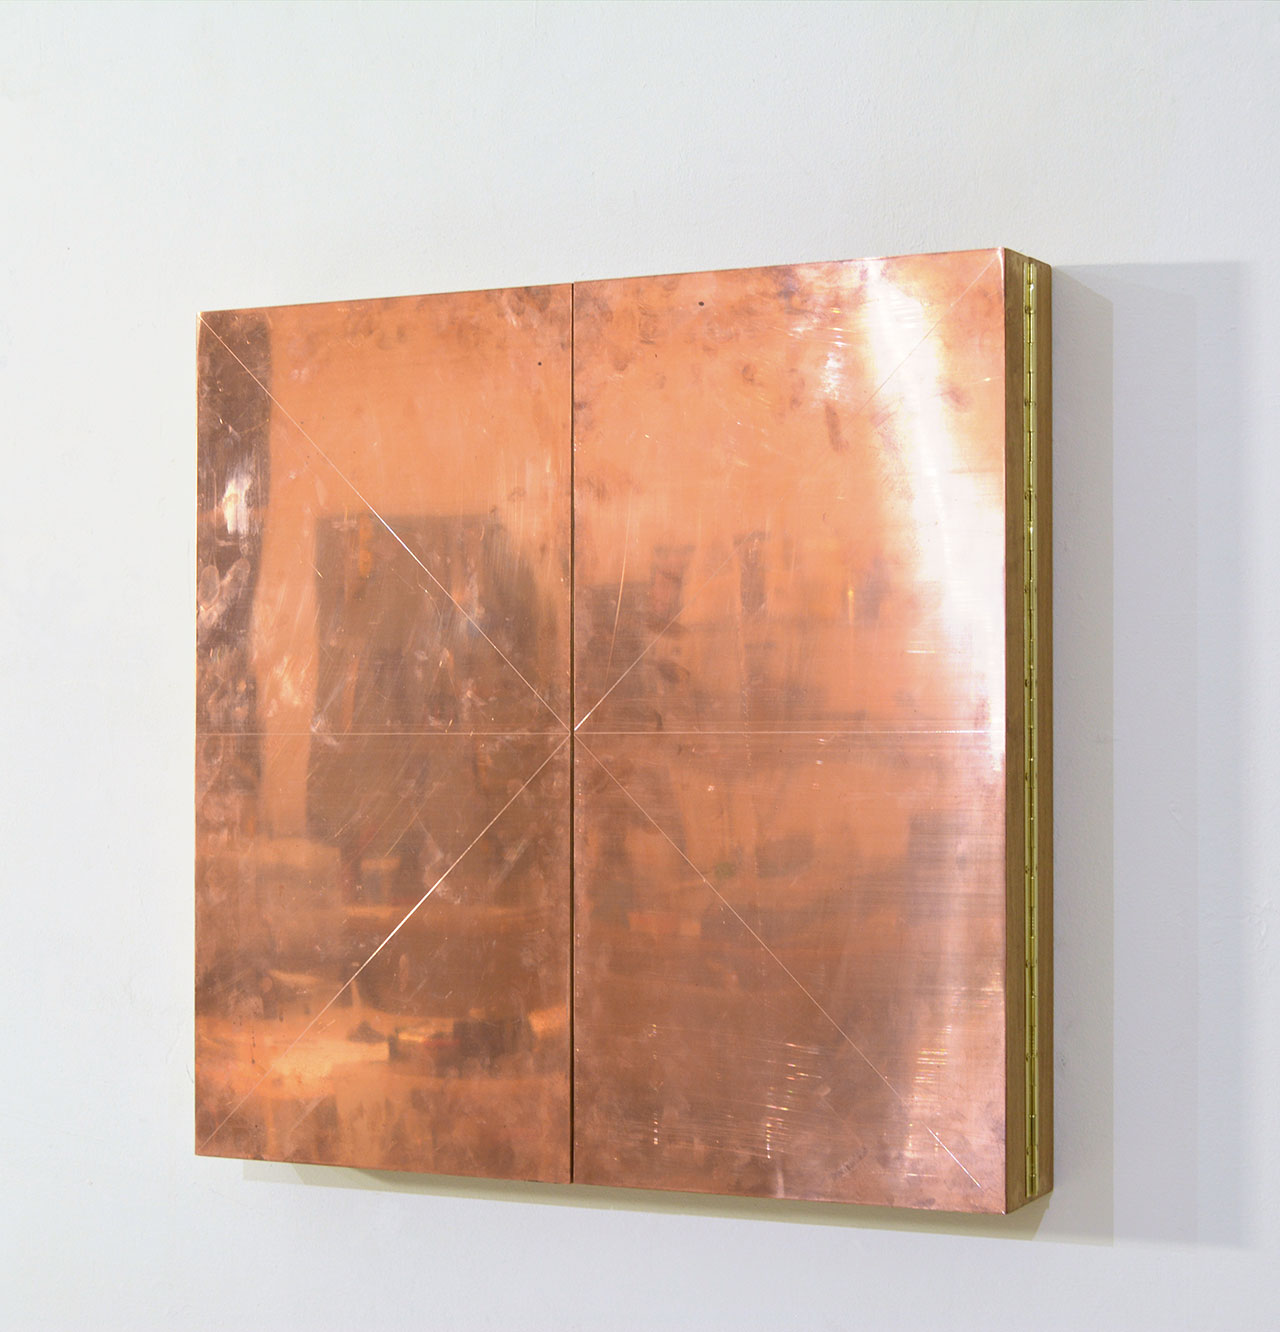 Technological Mandala 128 Perpetual nexus, 2019, copper wires, copper plate, acrylic mirrior, paper, varnish, framed, artwork open 61x123x4,8 cm | 24x48½x1¾ inches ||  artwork closed 61x61x9,6 |24x24x3¾ inches. Courtesy: The Flat – Massimo Carasi. Photo by The Flat.